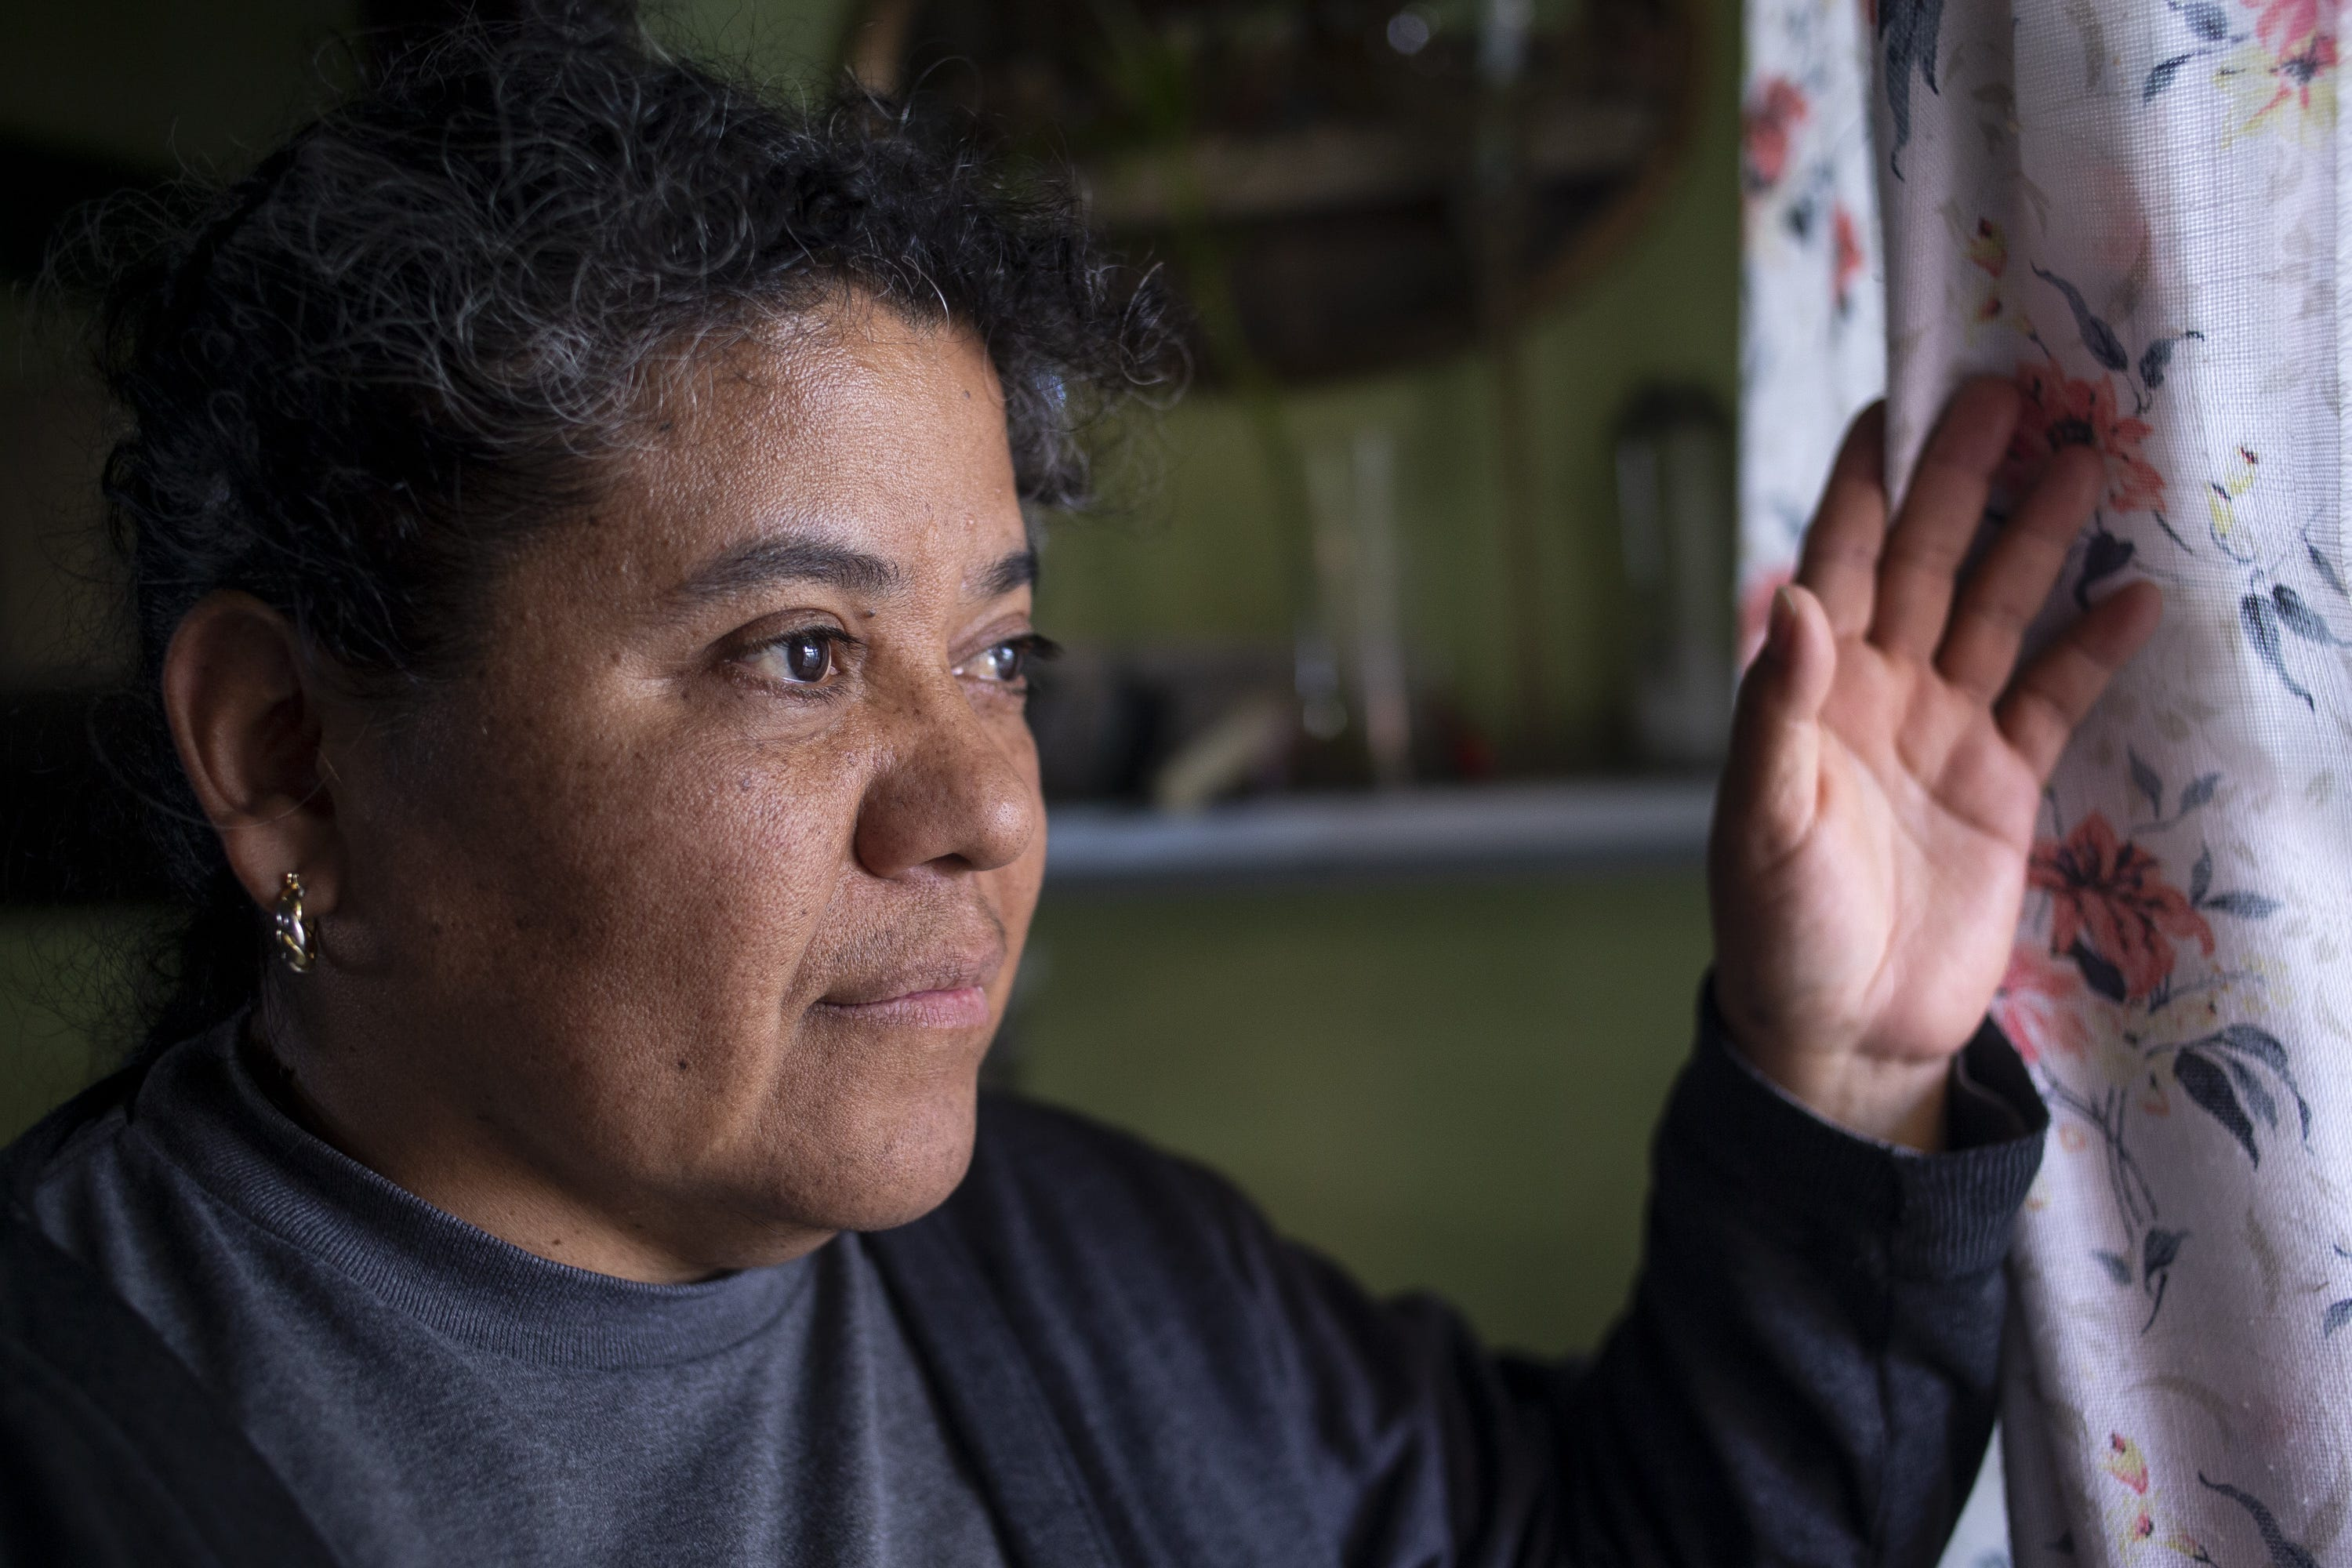 Blanca Abarca looks out the window of her home in South Phoenix.